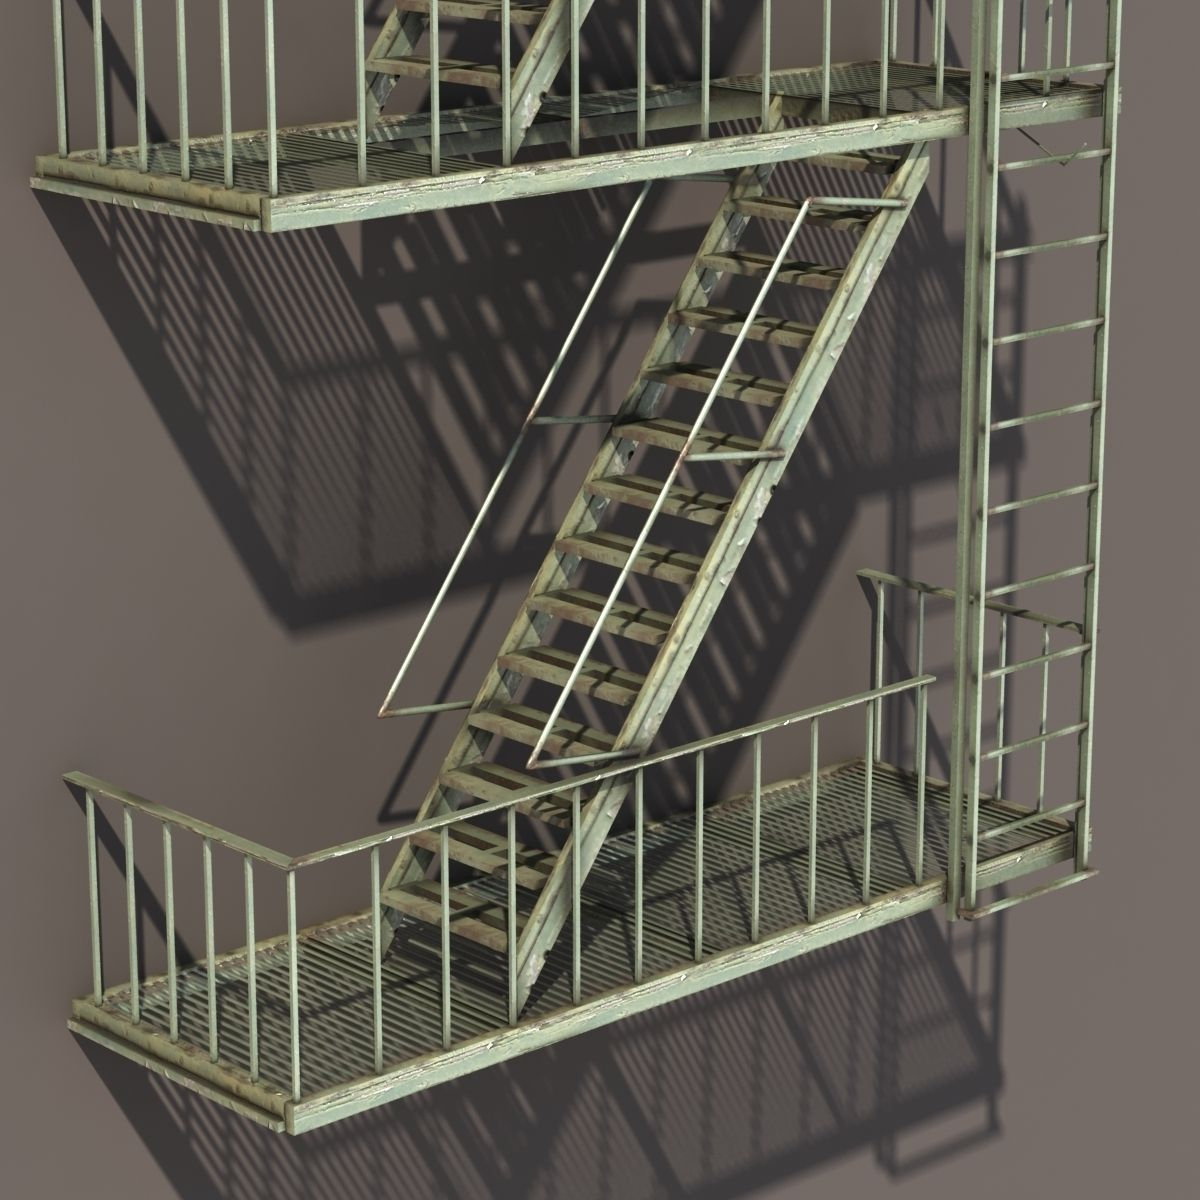 Genial Fire Escape Stairs Low Poly 3d Model Low Poly Obj Mtl 3ds Lwo Lw Lws ...